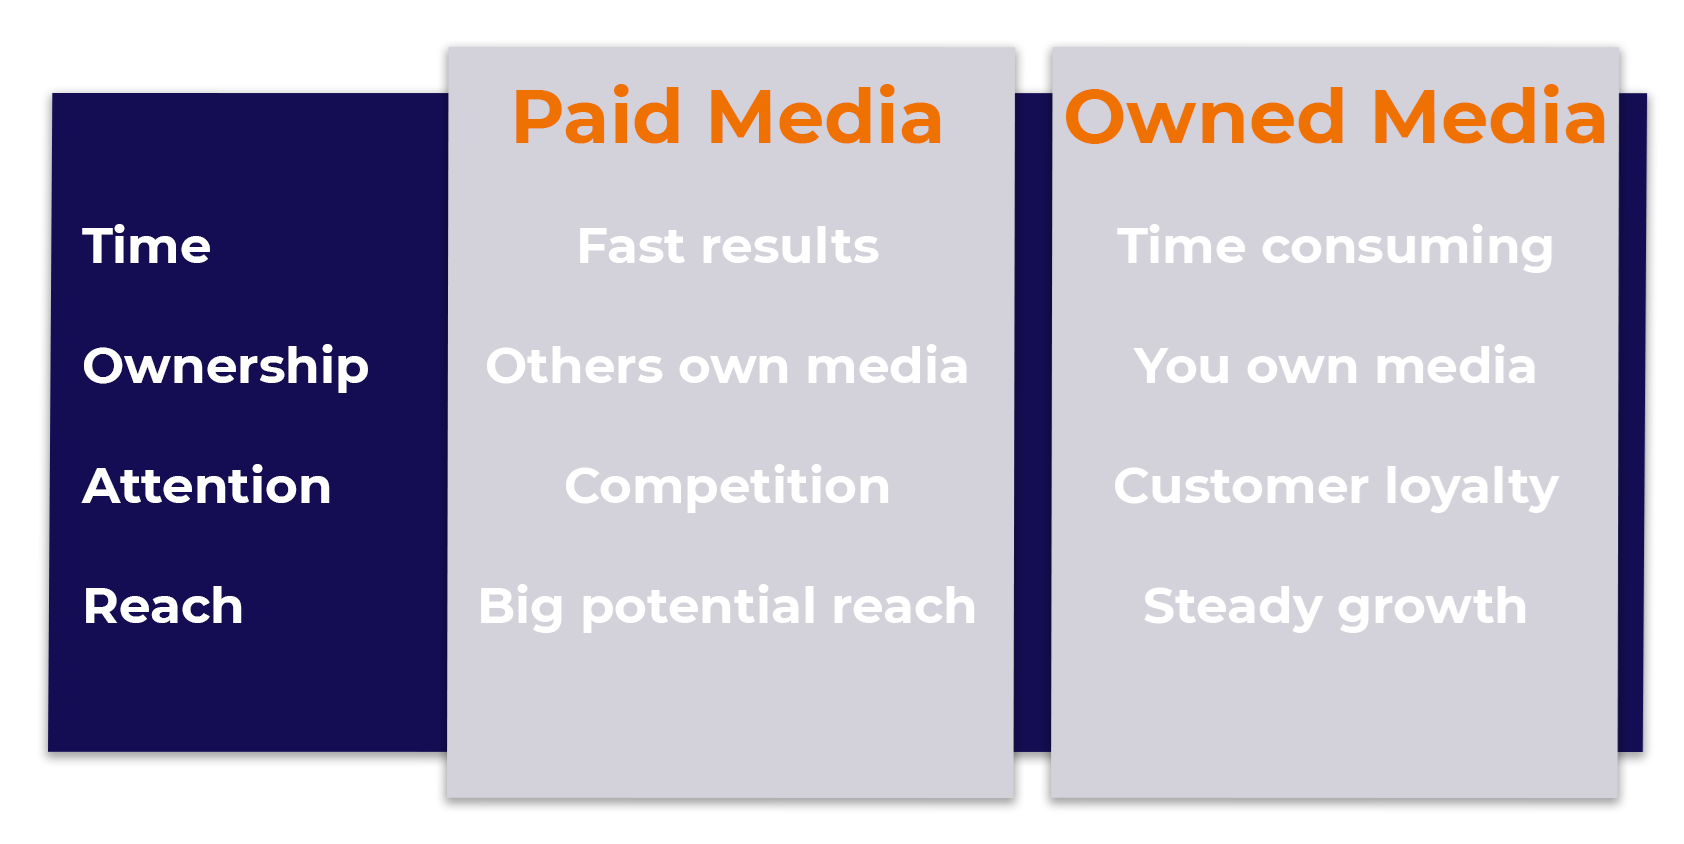 The differences between paid and owned